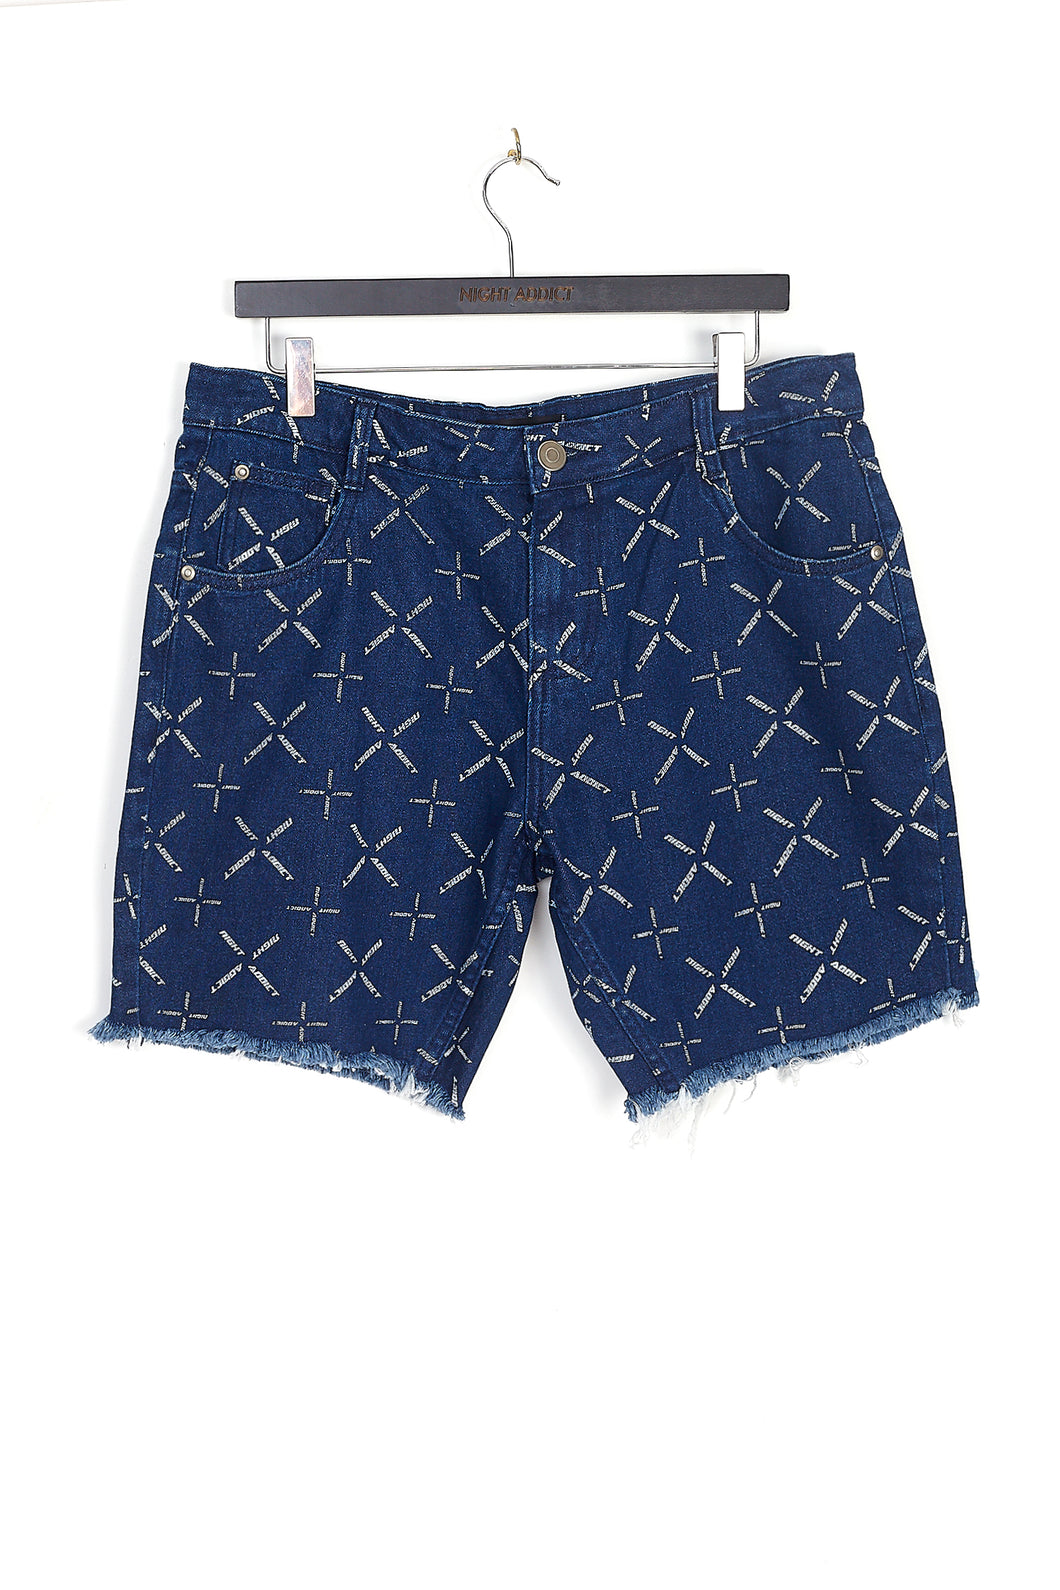 ALL OVER PRINT DENIM SHORTS – BLUE W/ WHITE